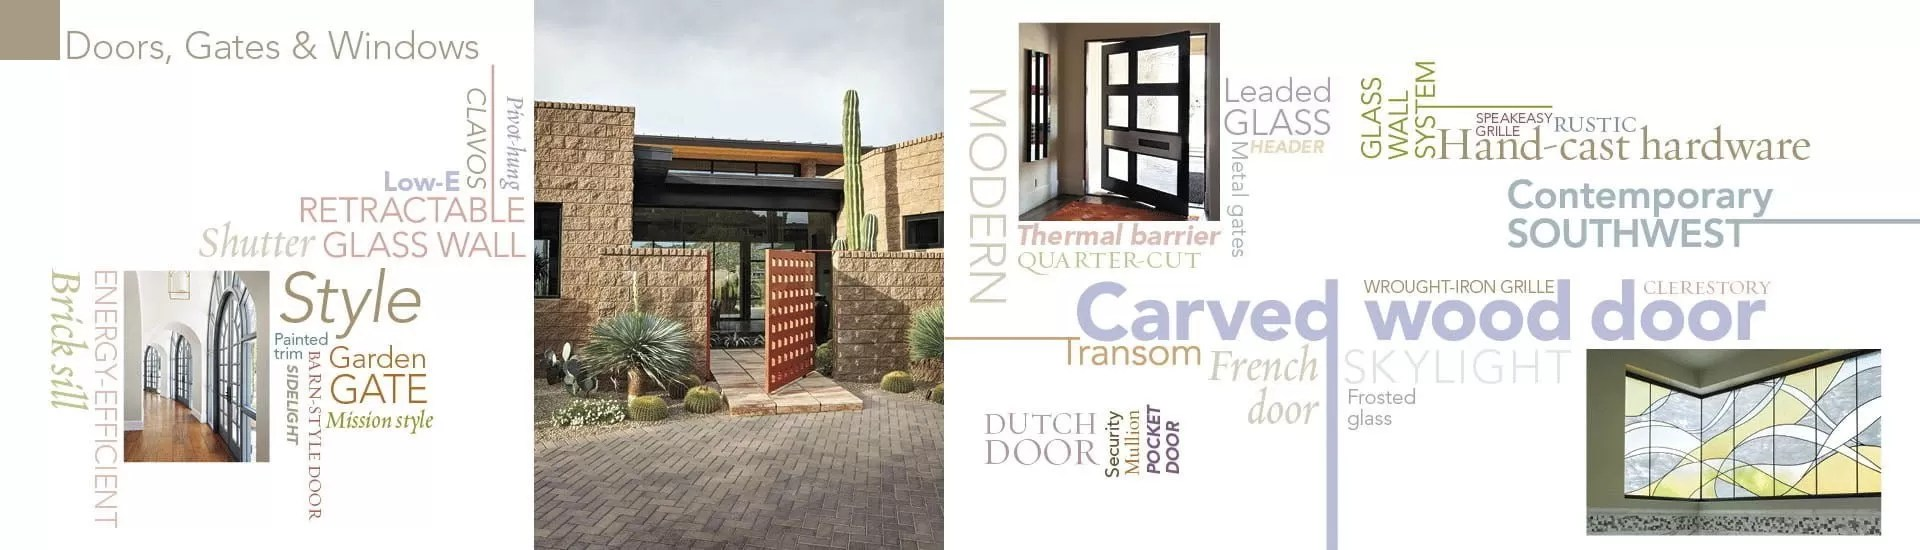 Security shutters, grilles and door gates